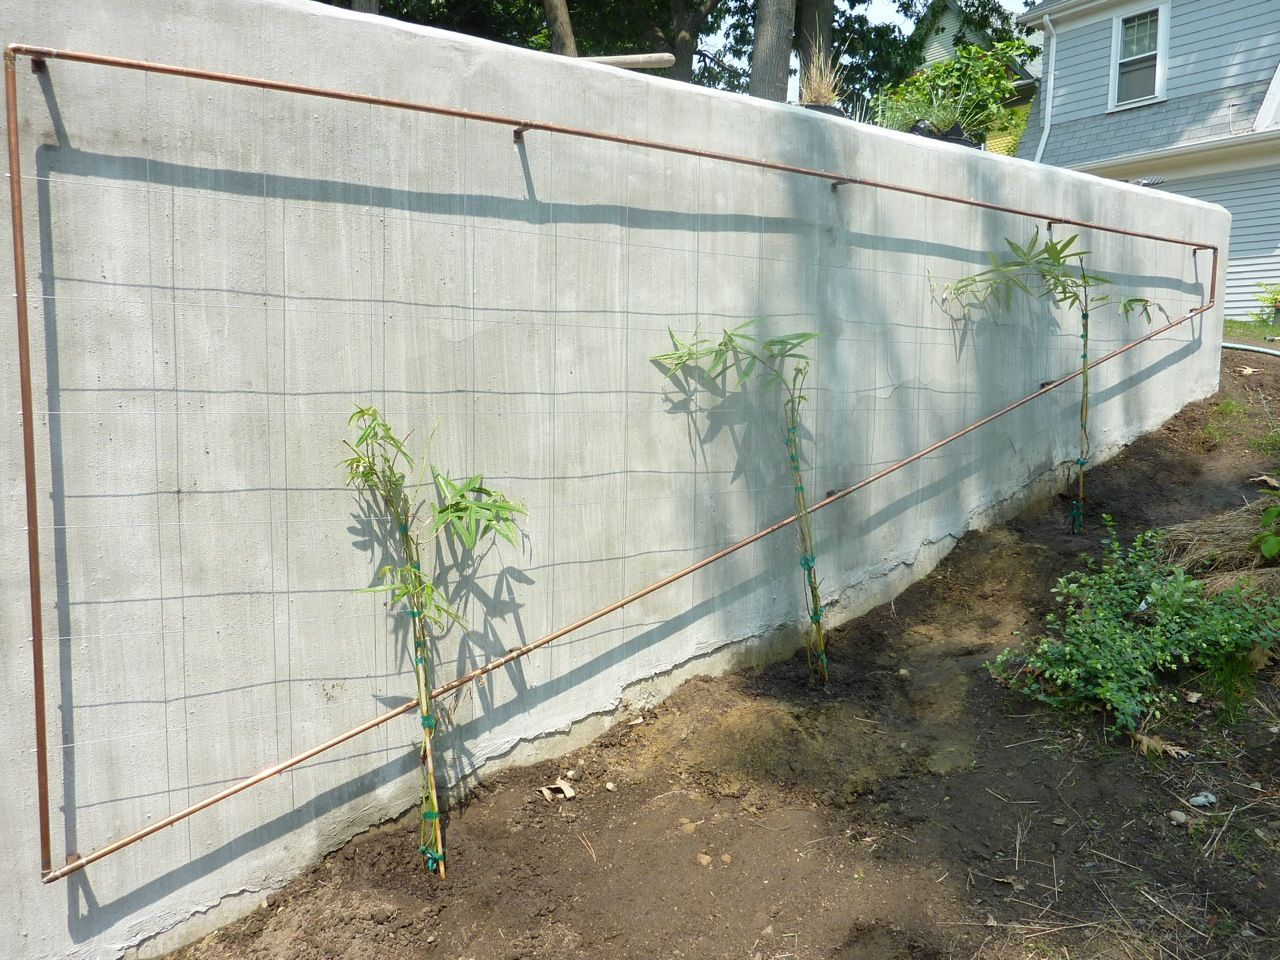 Copper And Wire Trellis With Rubus Calycinoides Planted Against Brick Wall